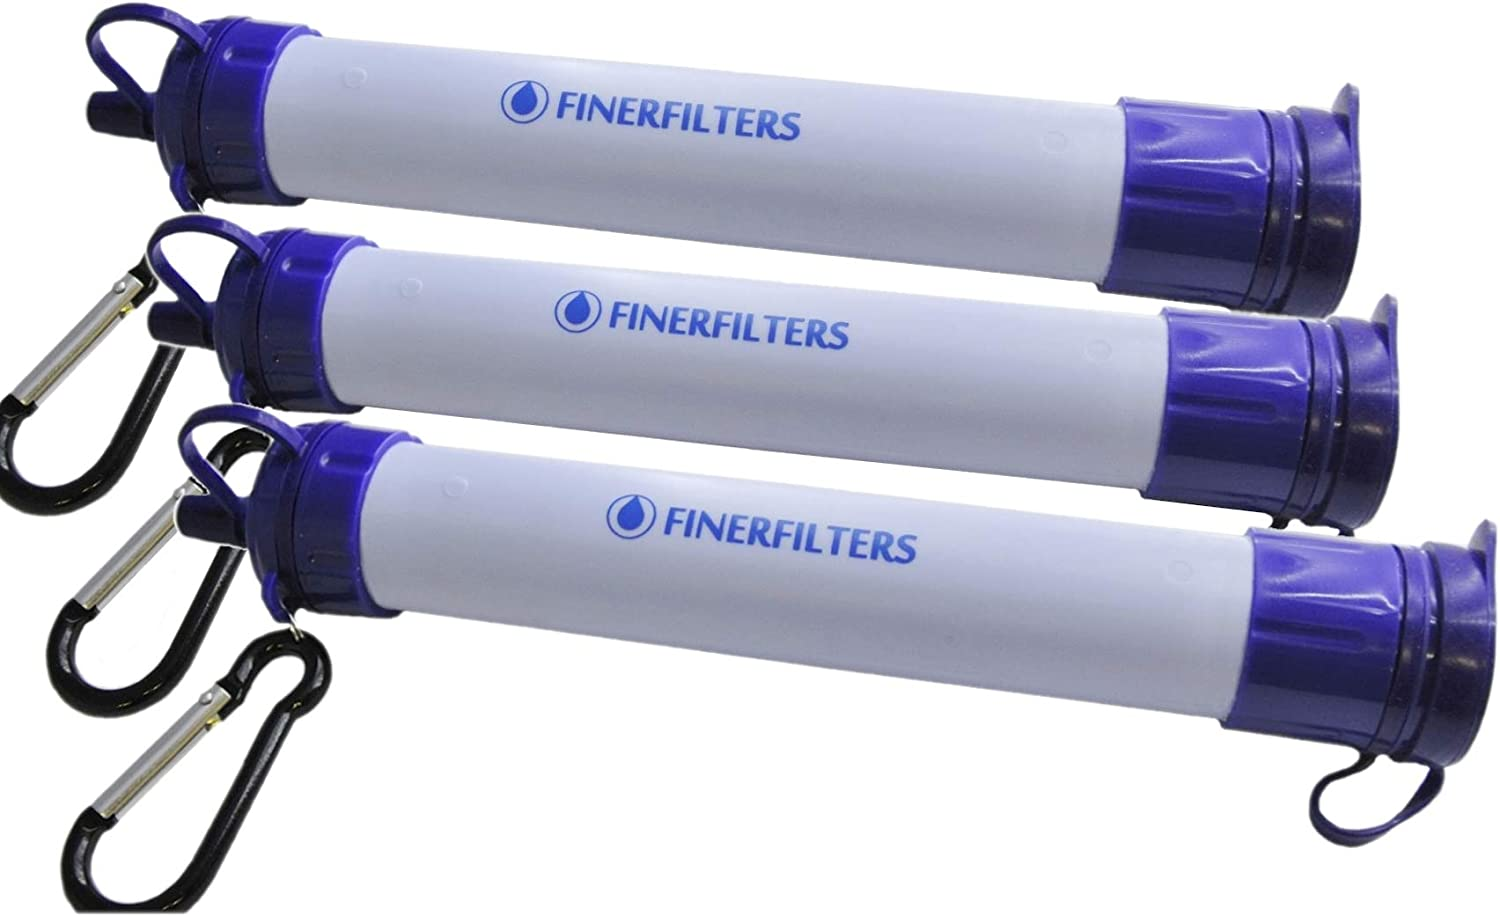 Ideal For Camping /& Hiking etc. FINERFILTERS Personal Portable Water Filter Straw with Activated Carbon 0.01 Micron Filter Membrane Provides Microbiological Water Purification